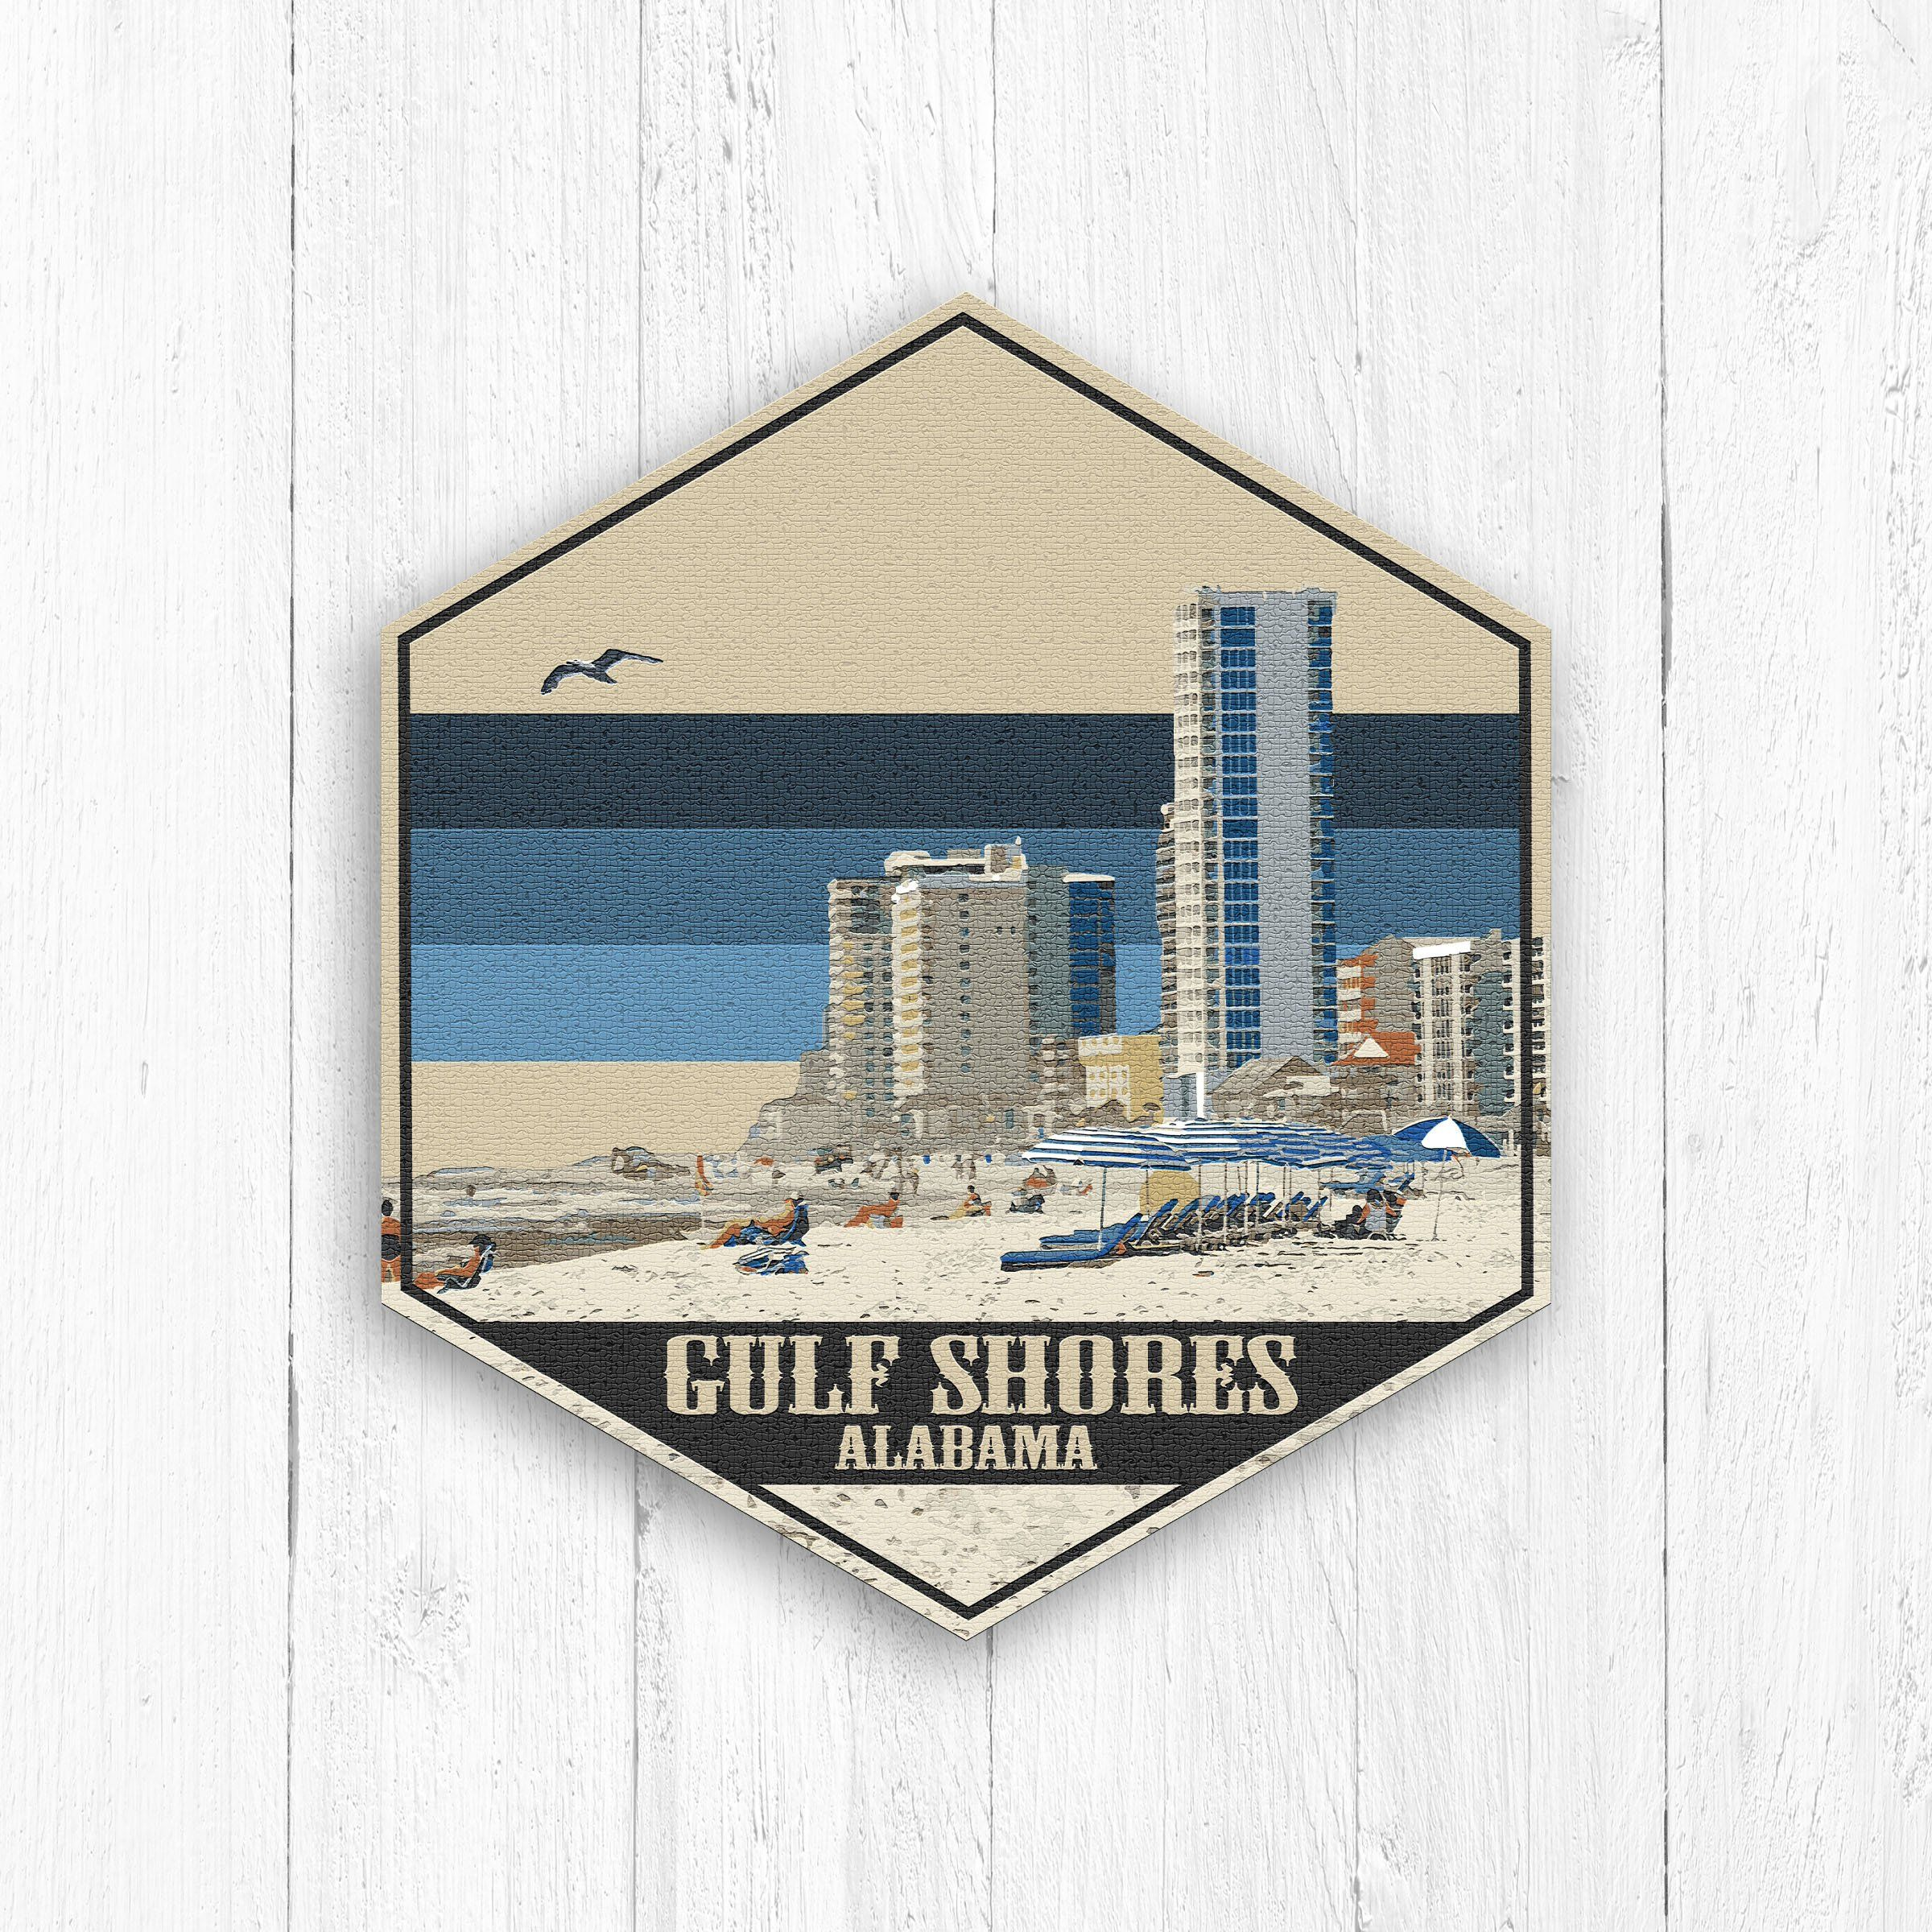 Gulf Shores Alabama Hexagon Canvas Art Travel Souvenir Or Gift